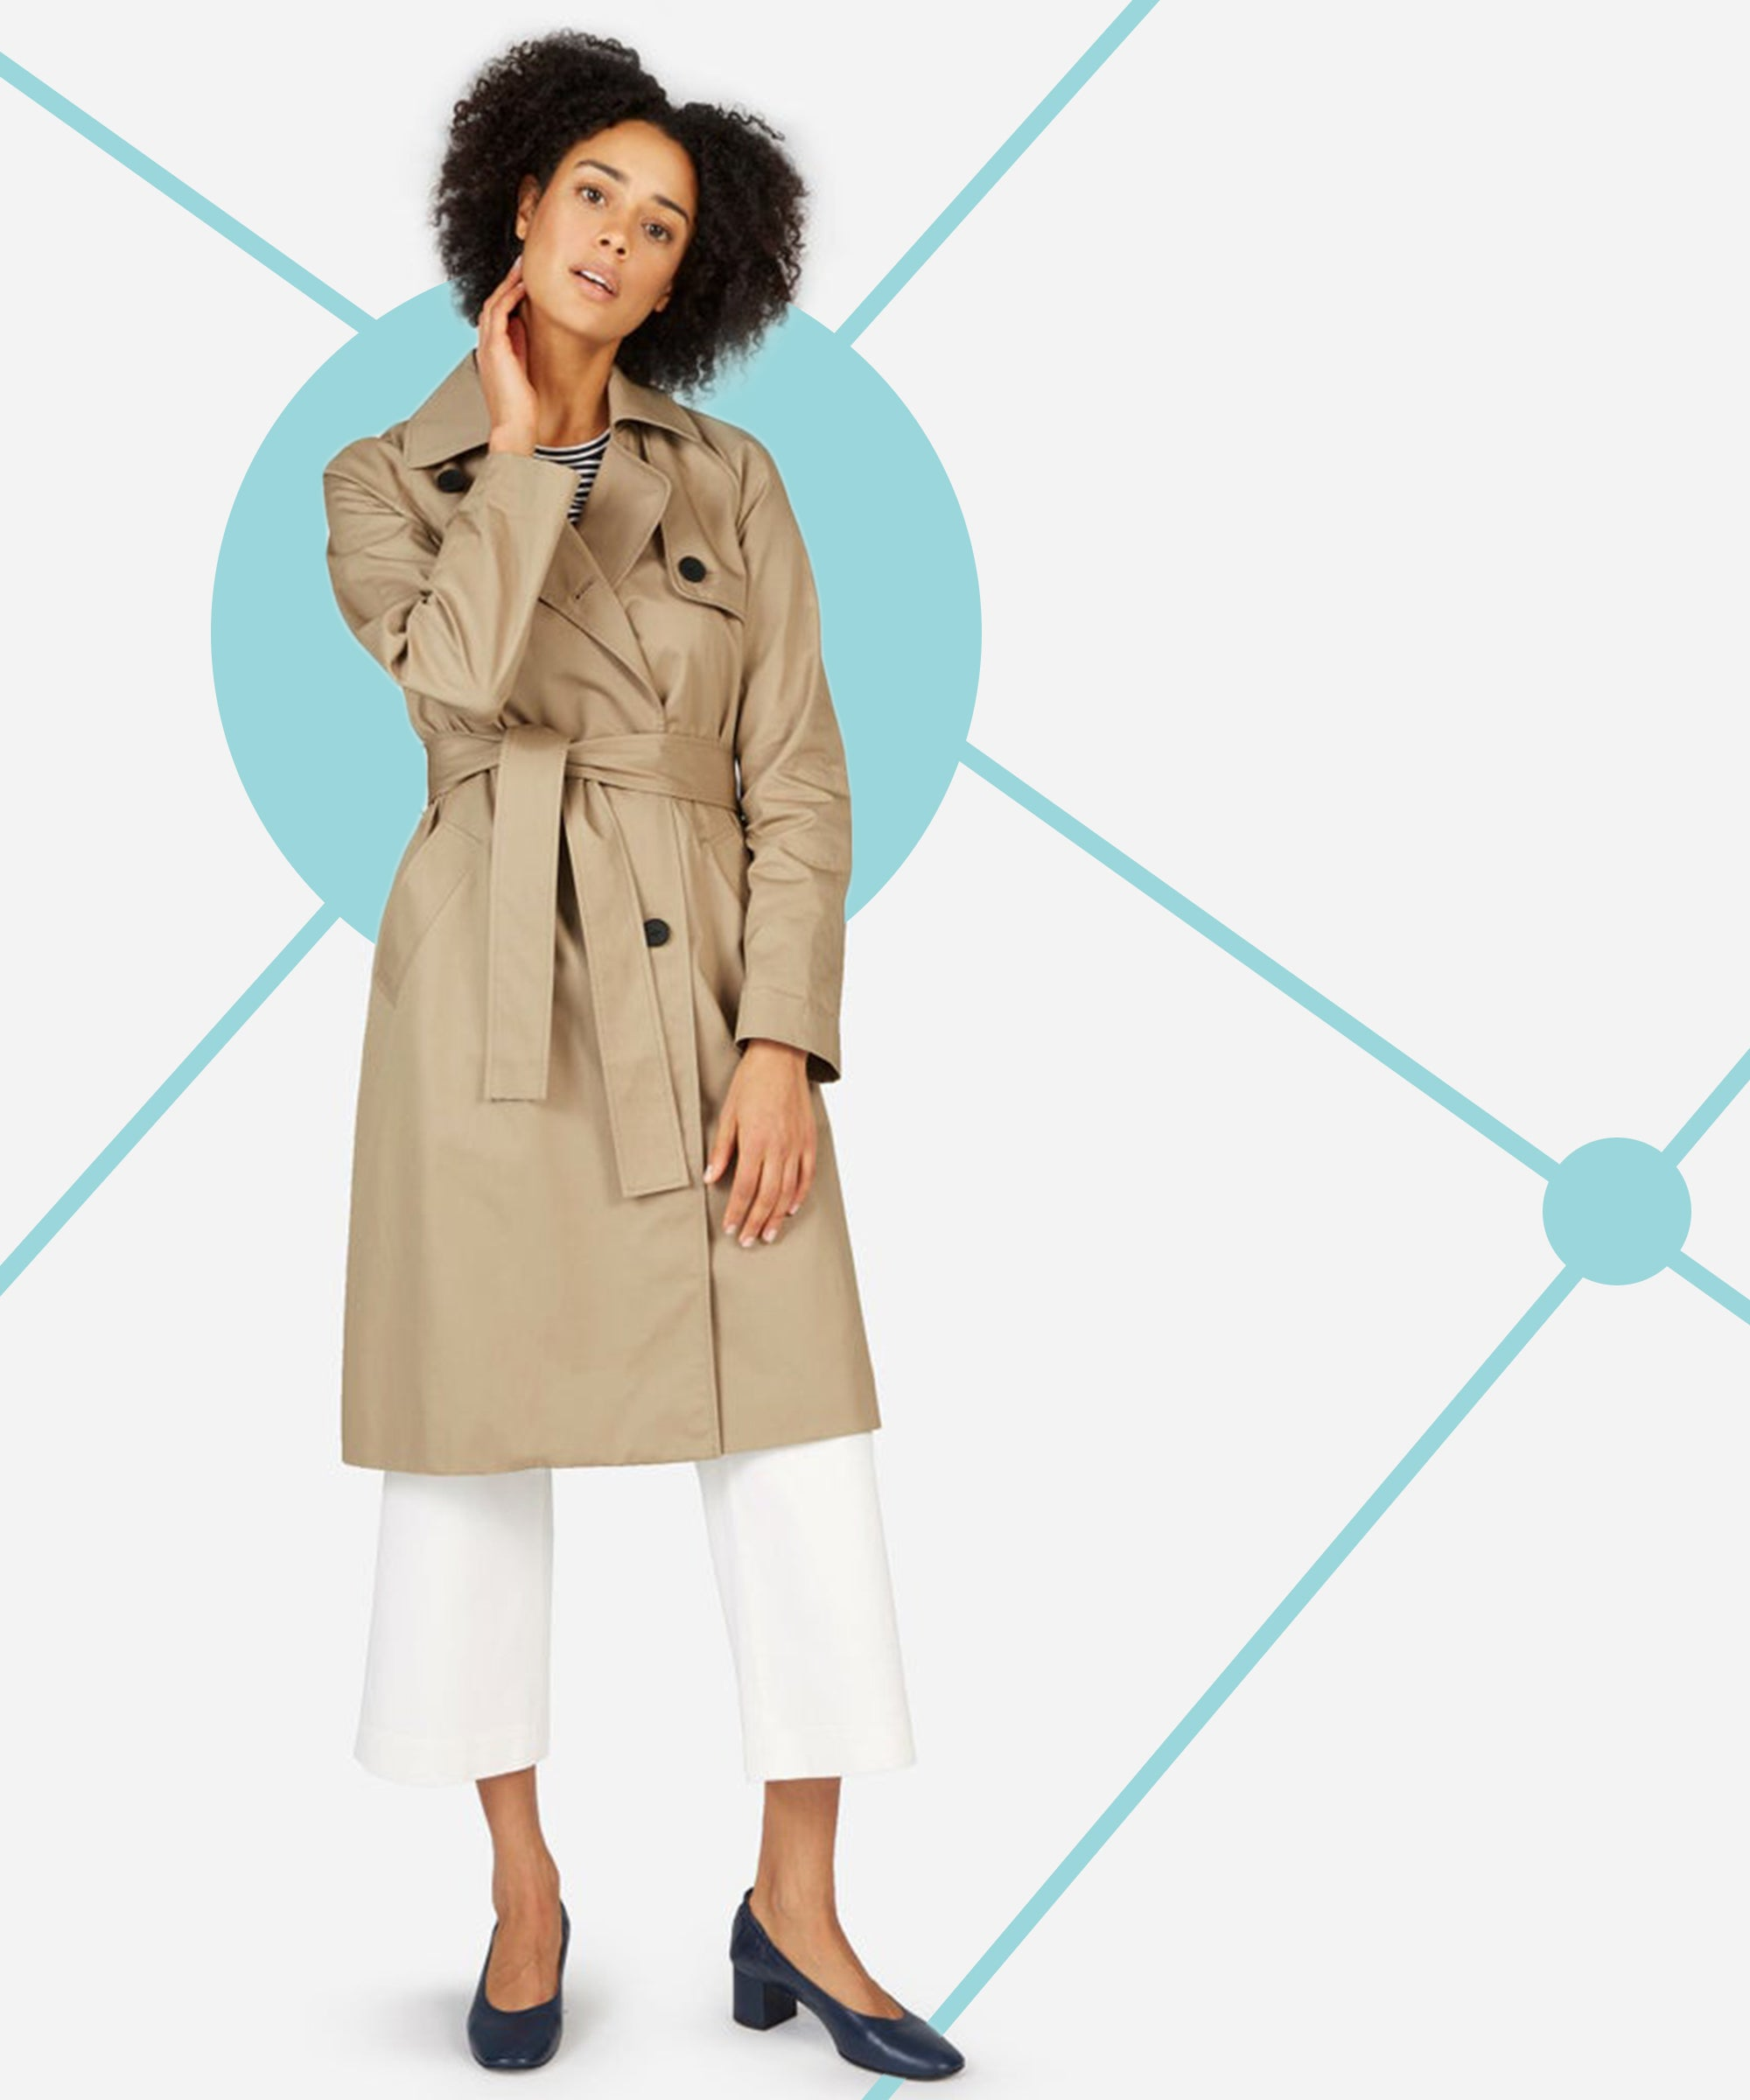 Fall Trench Coats To Rock Day & Night